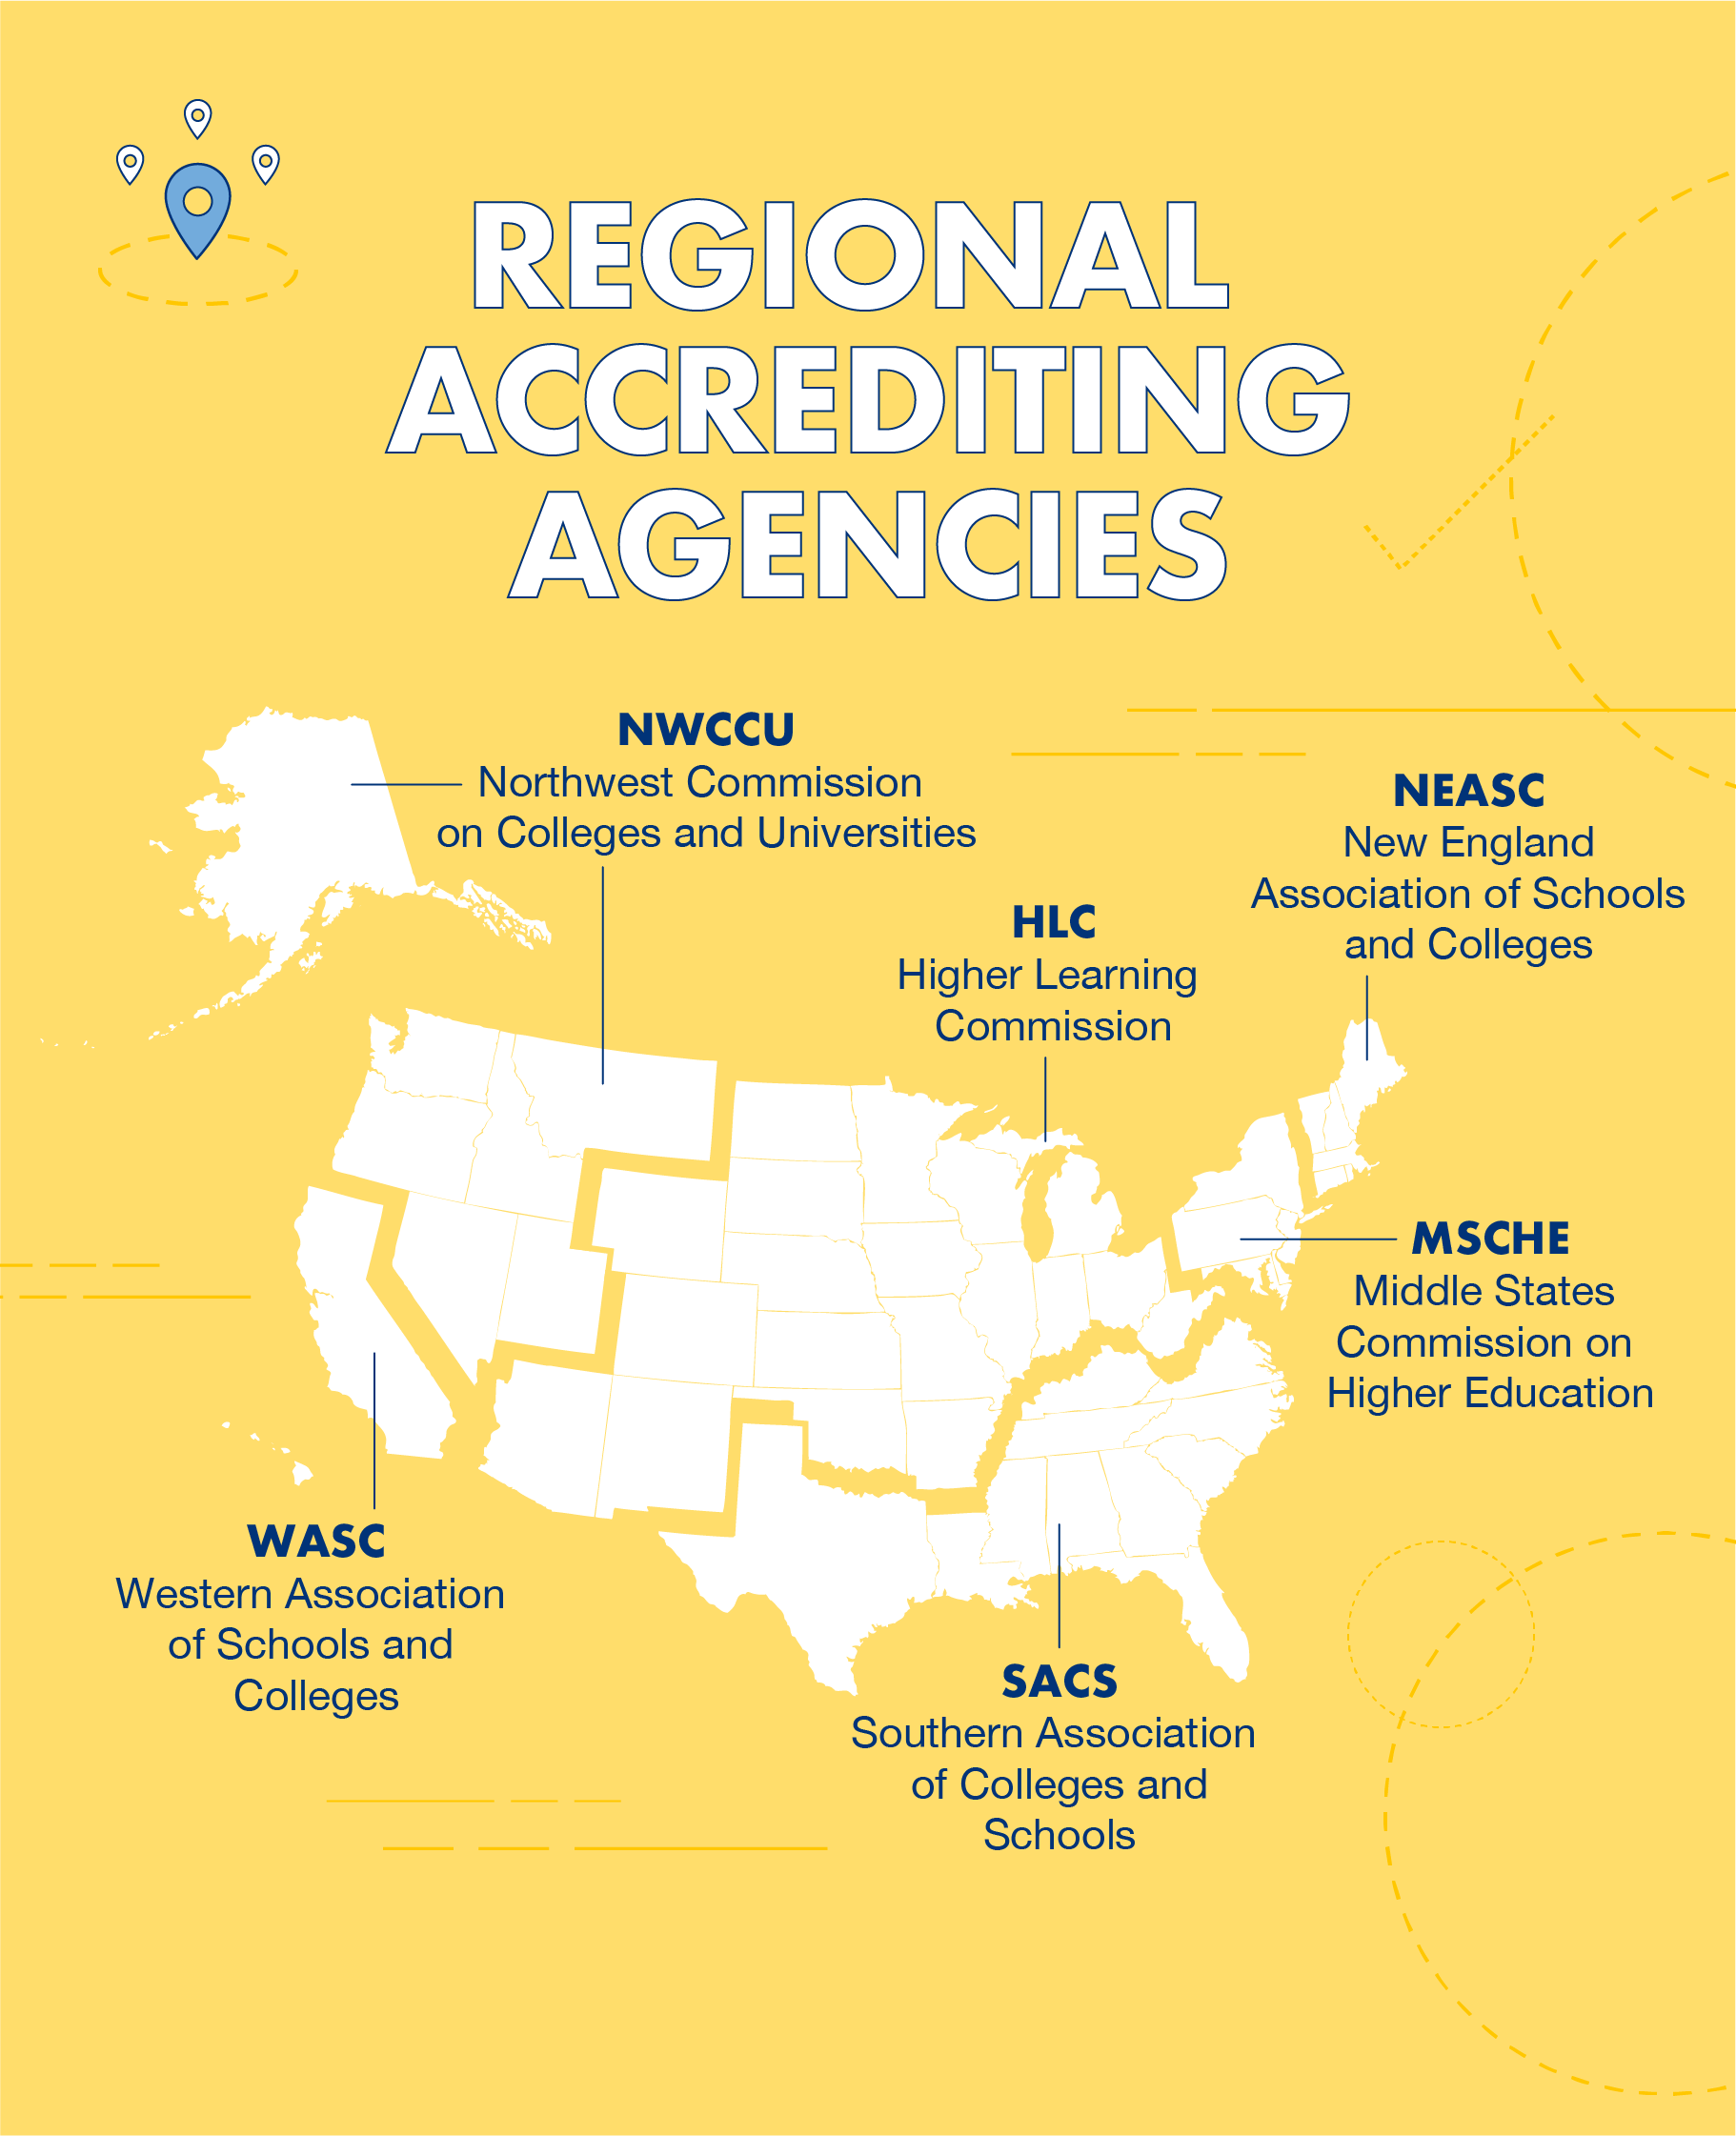 There are six regional accrediting agencies for higher education in the U.S.